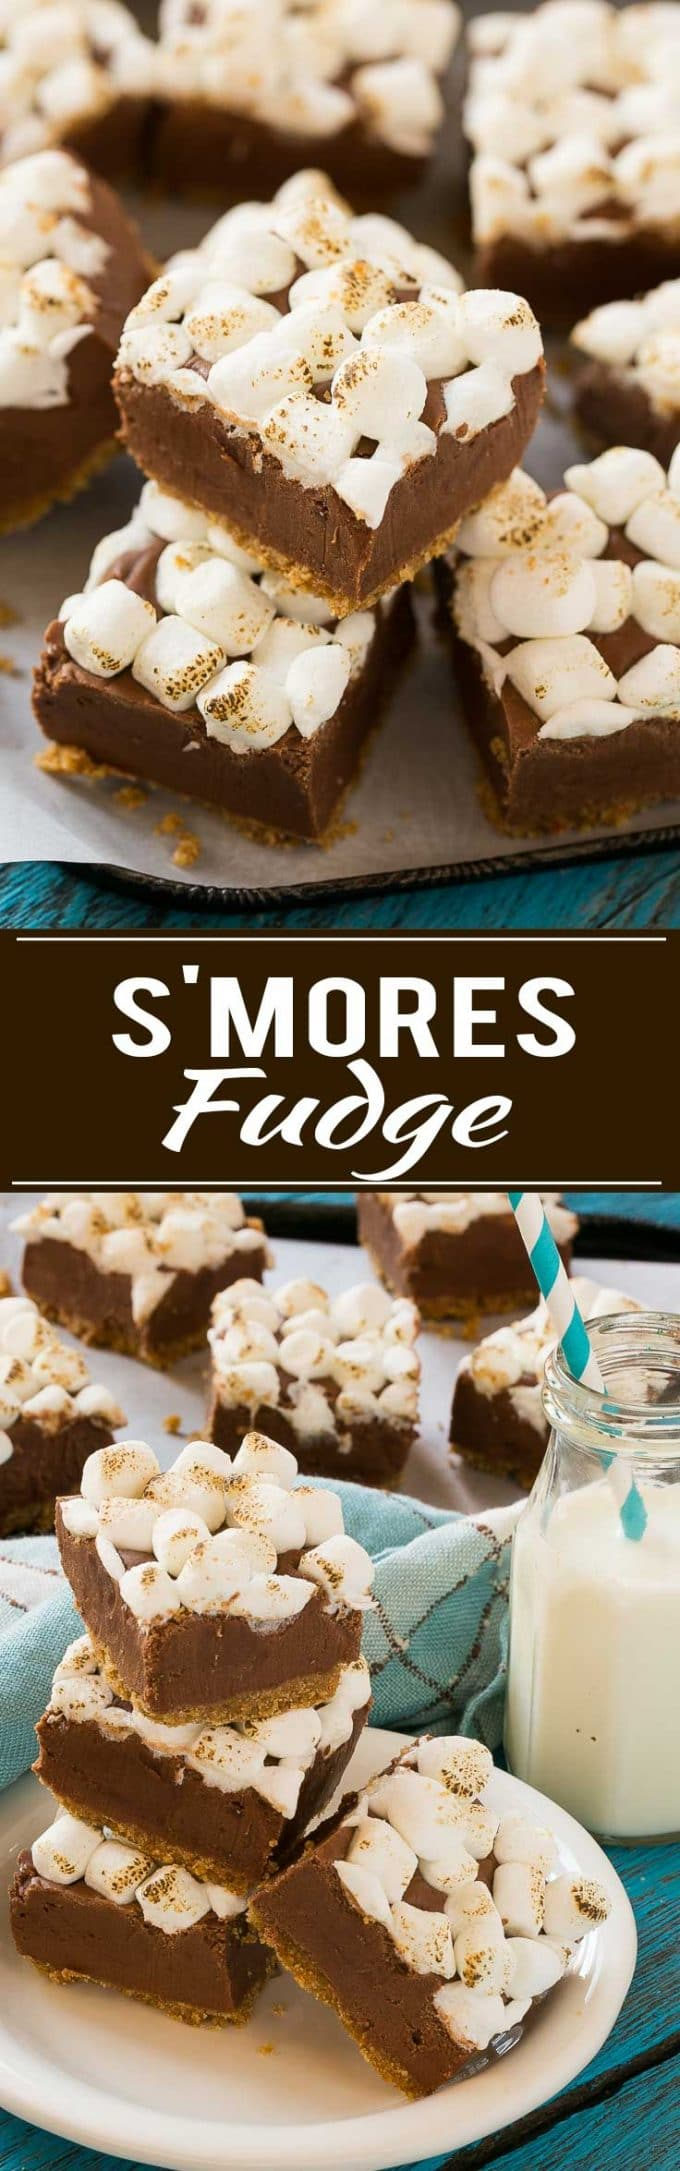 S'mores Fudge Recipe | Best S'mores Fudge | Easy S'mores Fudge | Fun Fudge Recipe